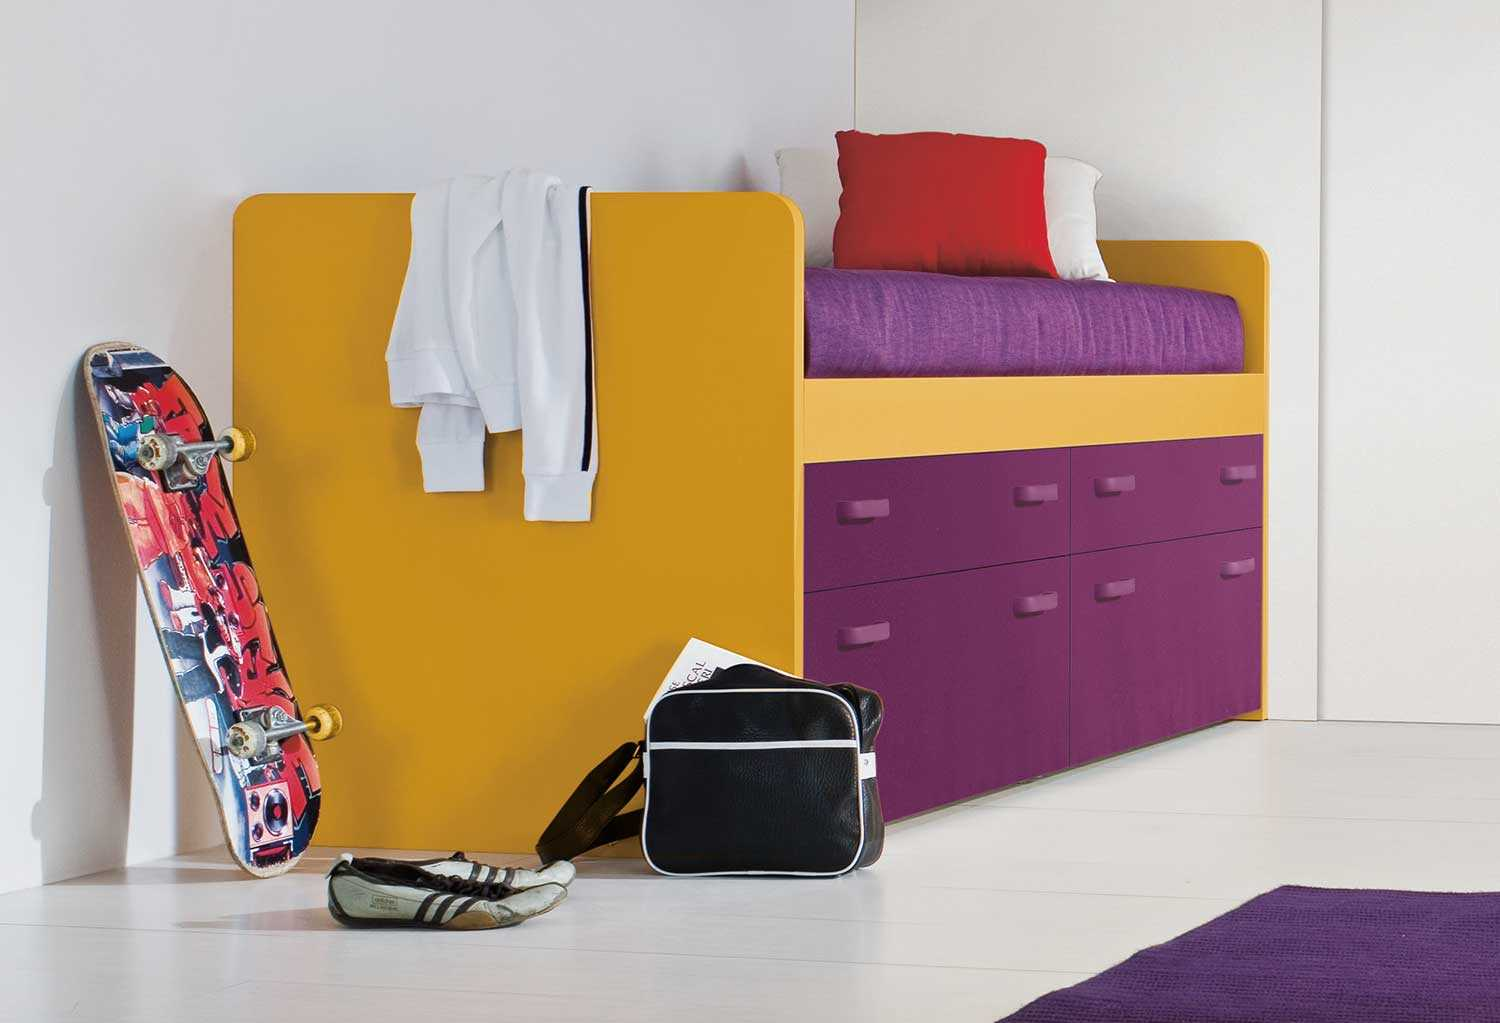 Letto Con Cassetto Letto.Letto Singolo Con Cassetti Lobby Box Clever